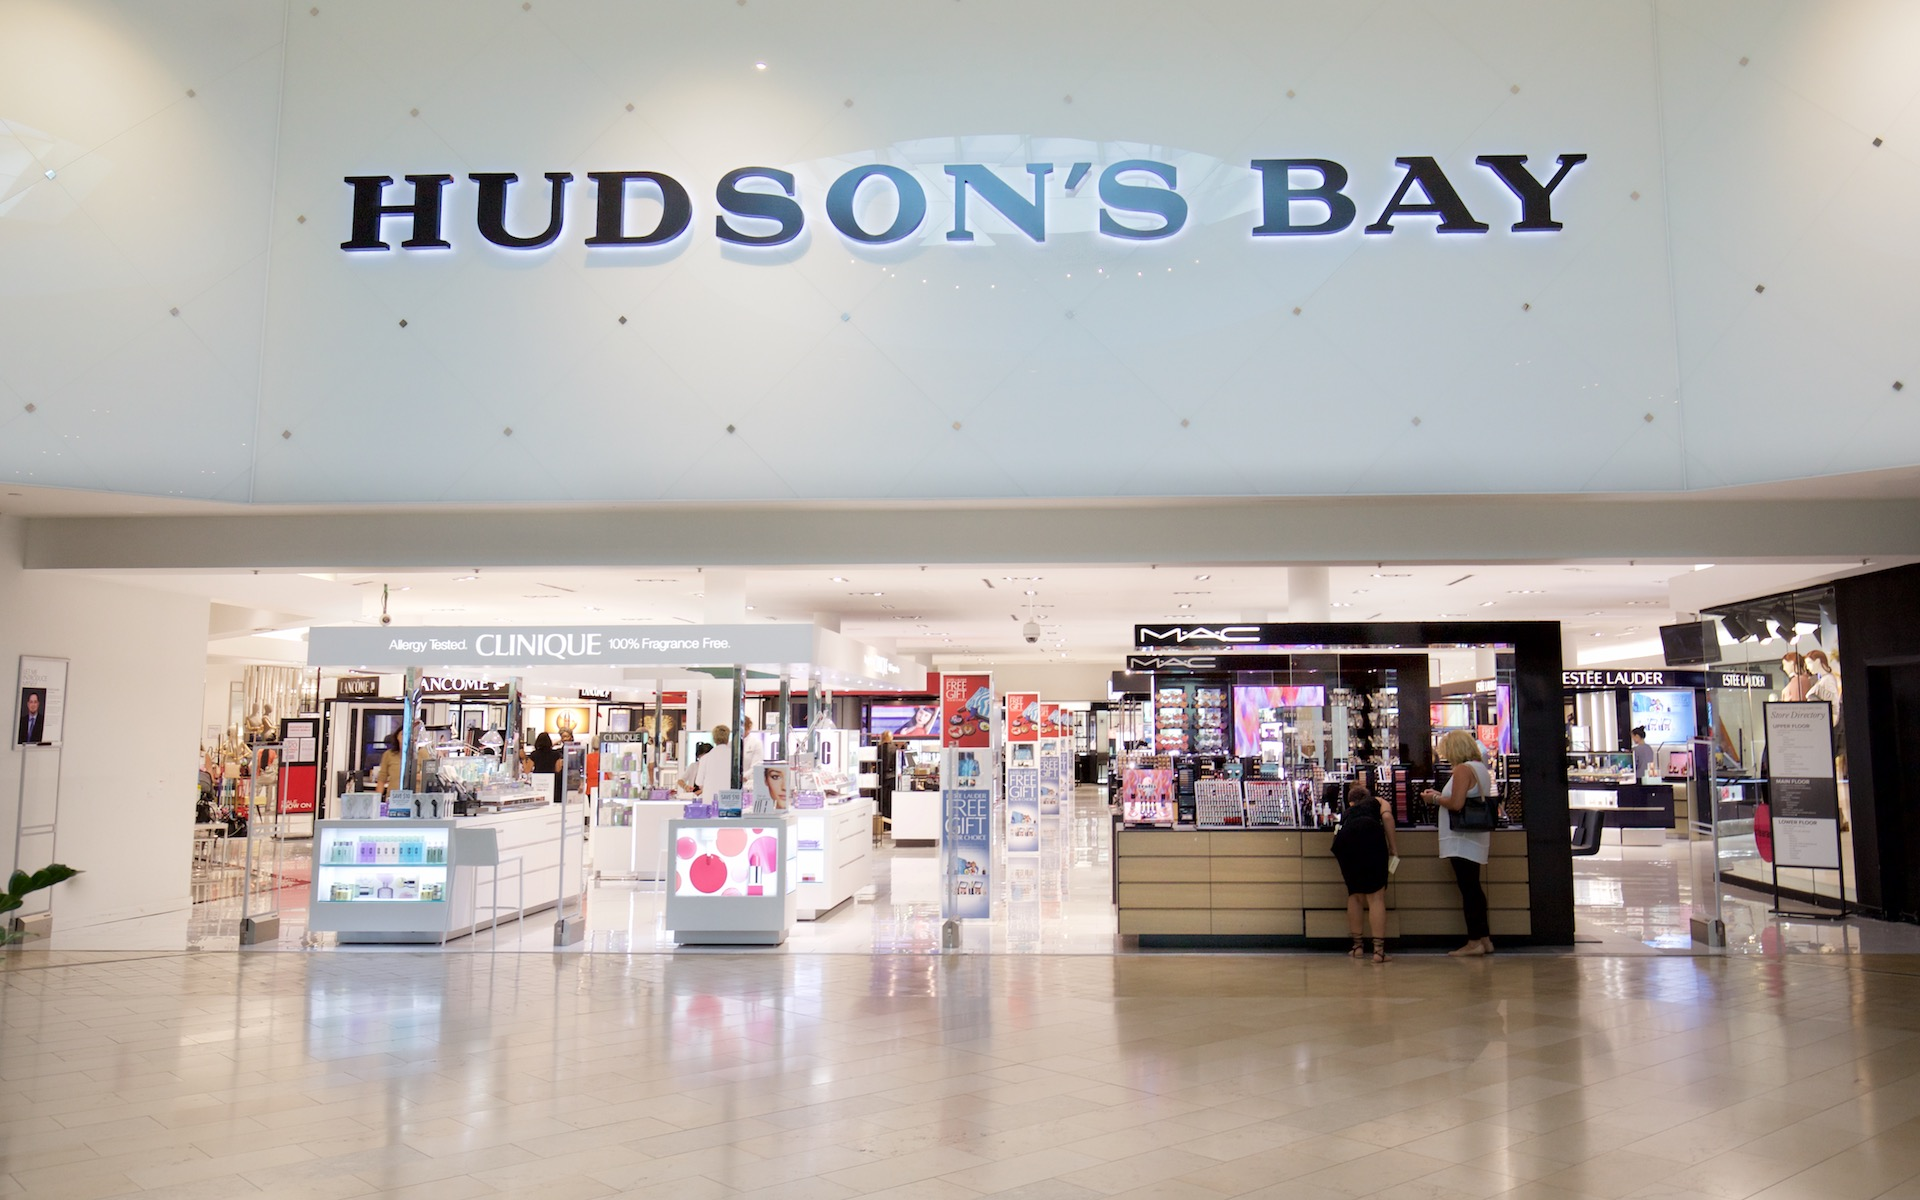 HUDSON'S BAY SQUARE ONE SHOPPING CENTRE PHOTO: SQUARE ONE SHOPPING CENTRE